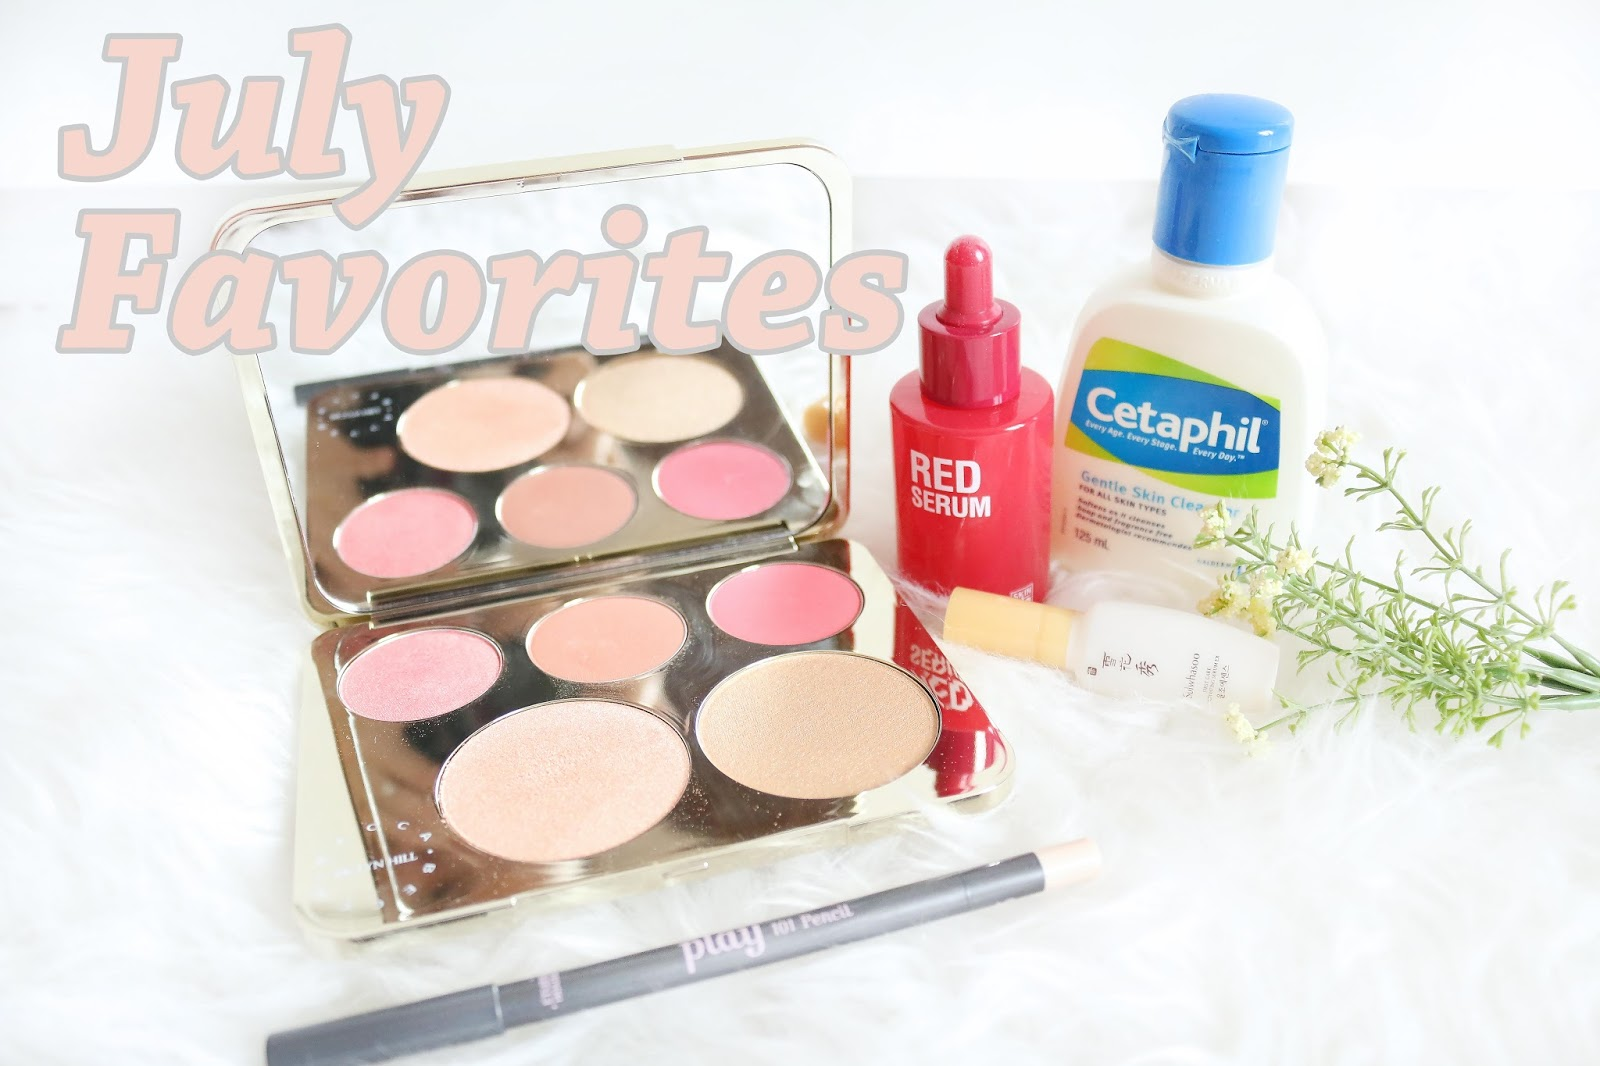 becca x jacklyn hill, skin lab red serum, red serum, cetaphil, cetaphil gentle skin cleanser, etude house, etude house play 101 pencil, sulwhasoo, sulwhasoo activating serum